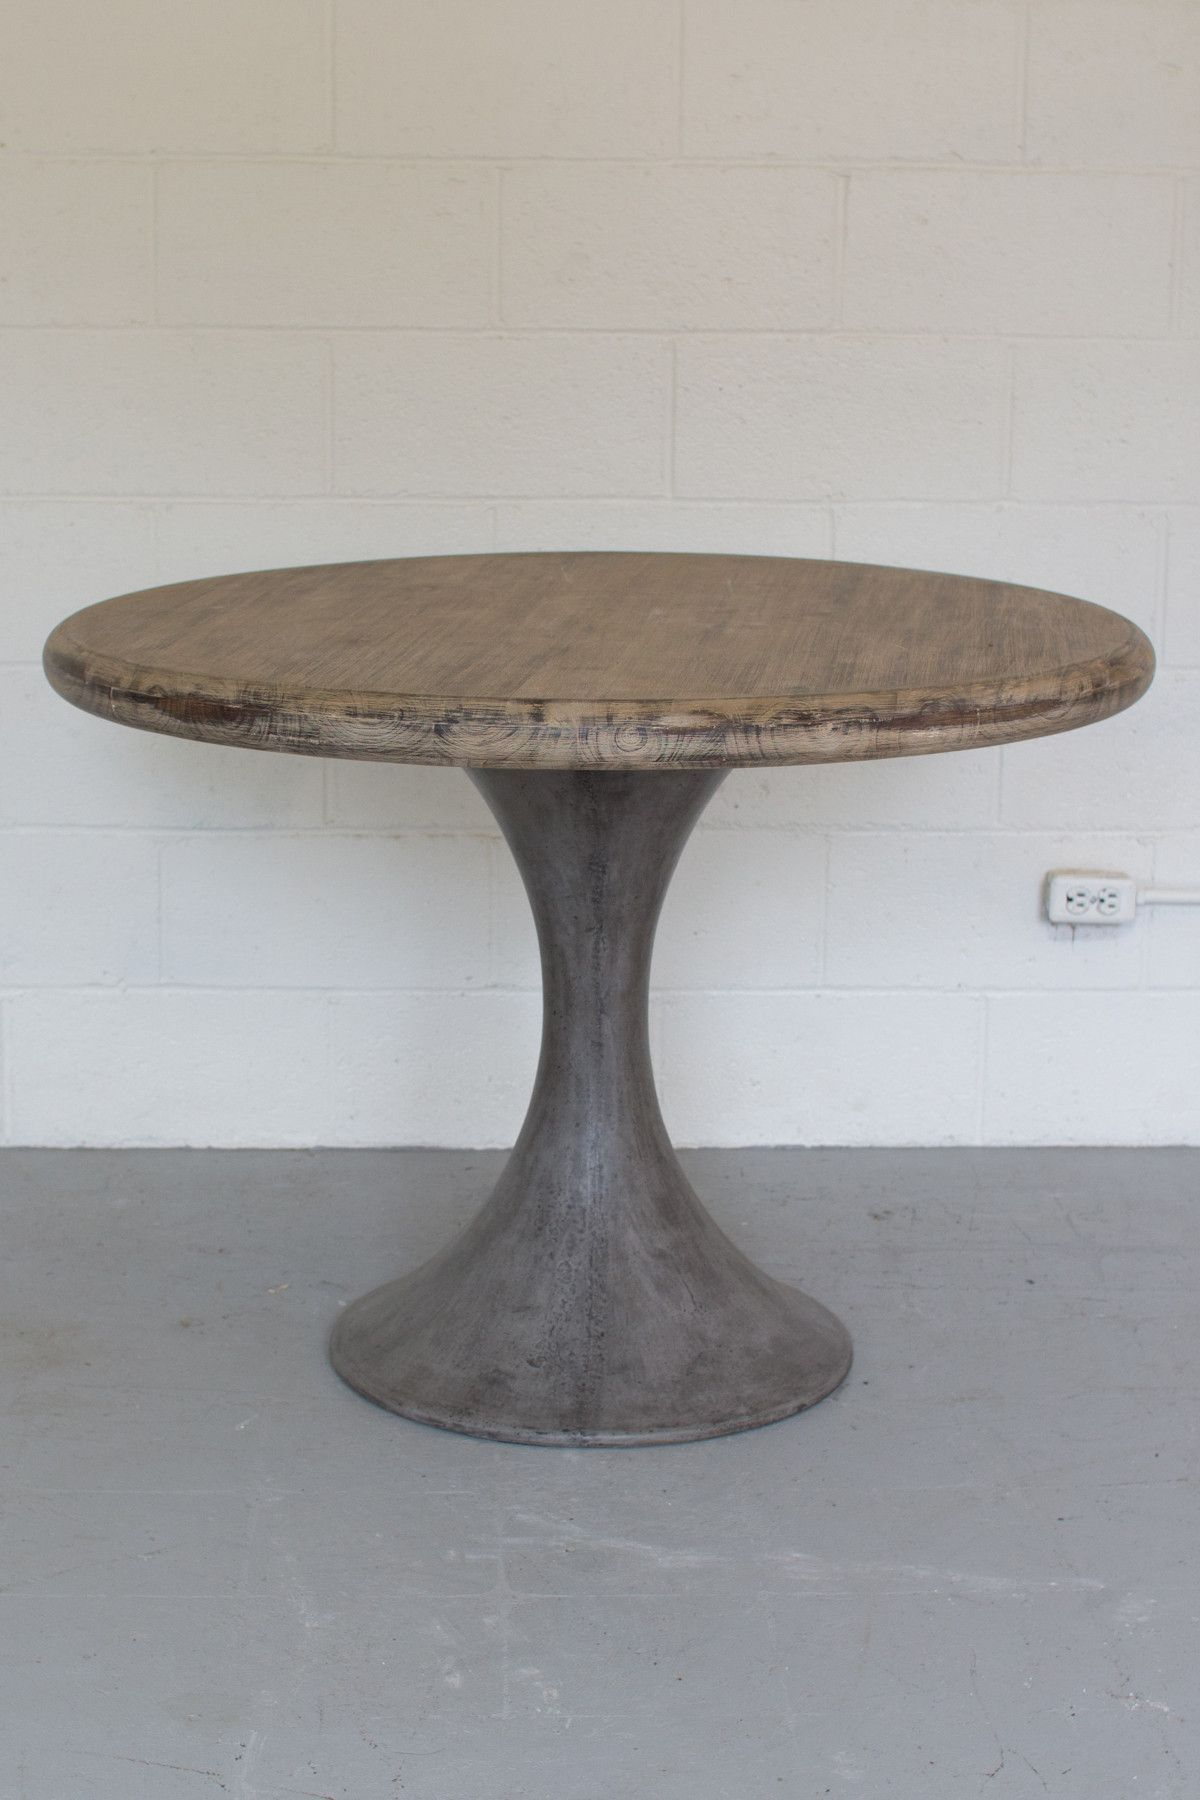 Concrete Top Dining Tables Kalalou Round Acacia Wood Dining Table With Concrete Pedestal Base